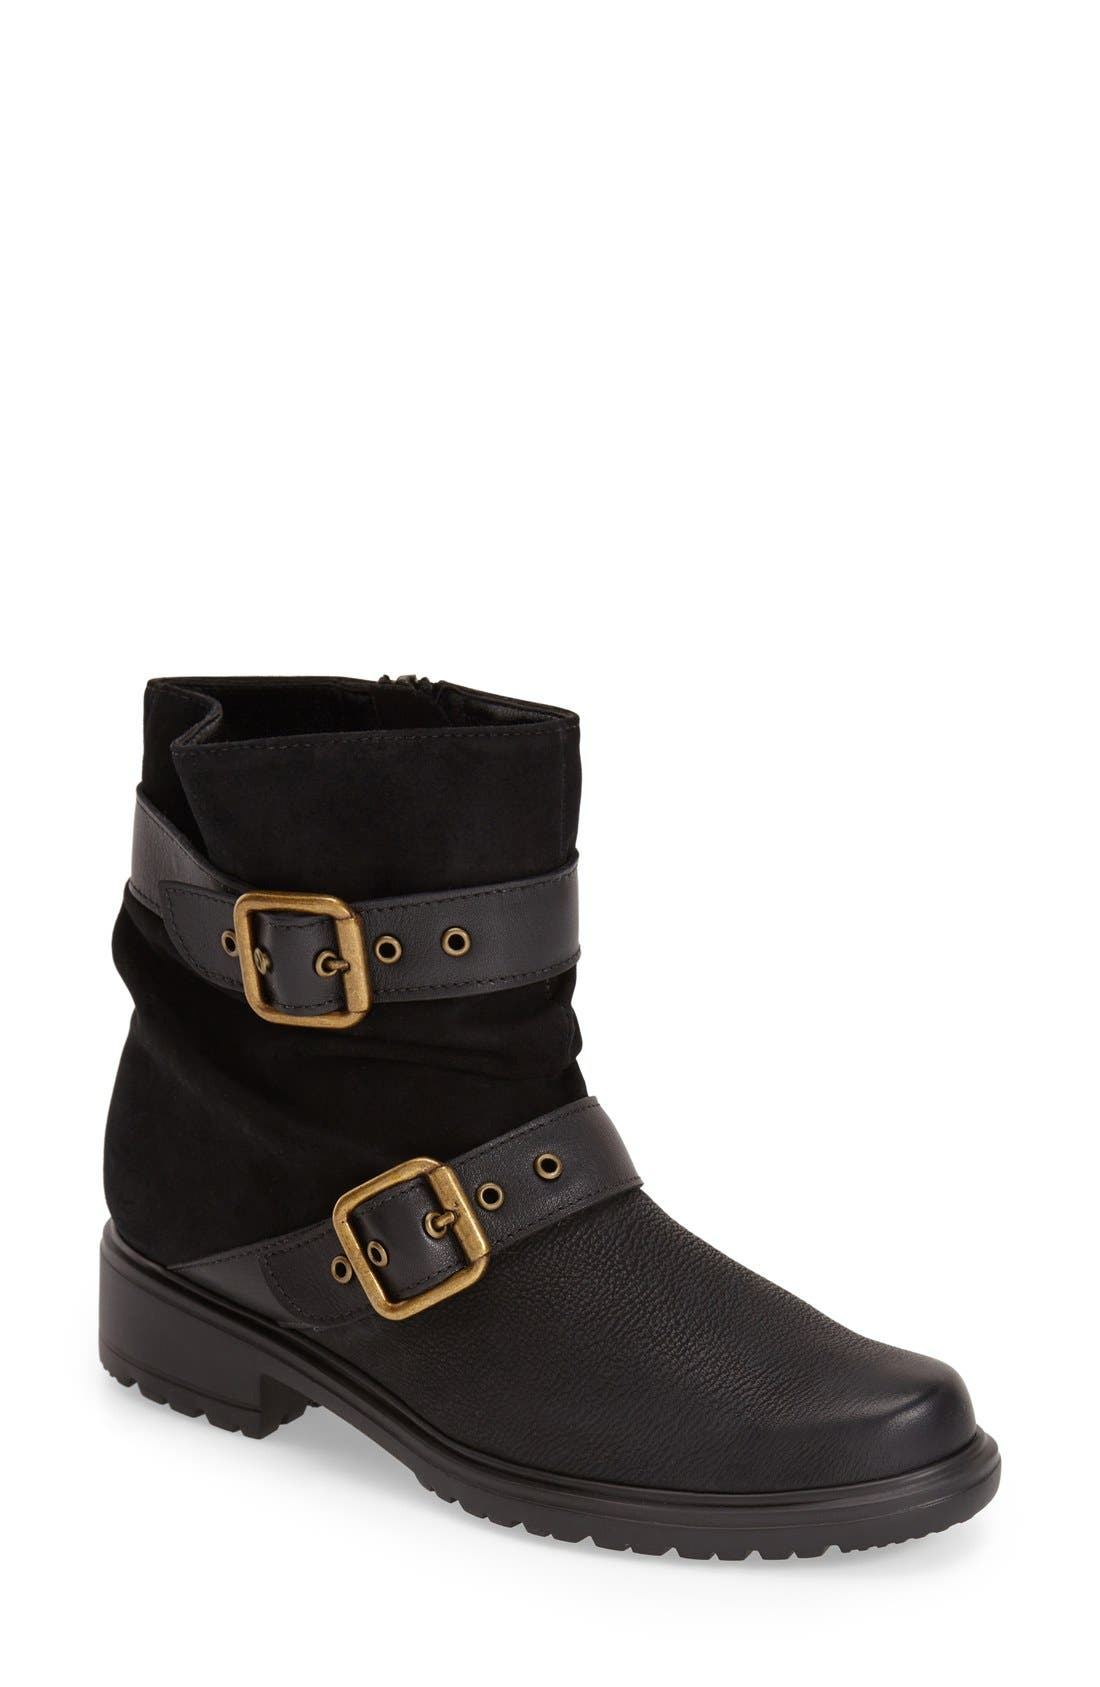 Munro Dallas Boot N - Black